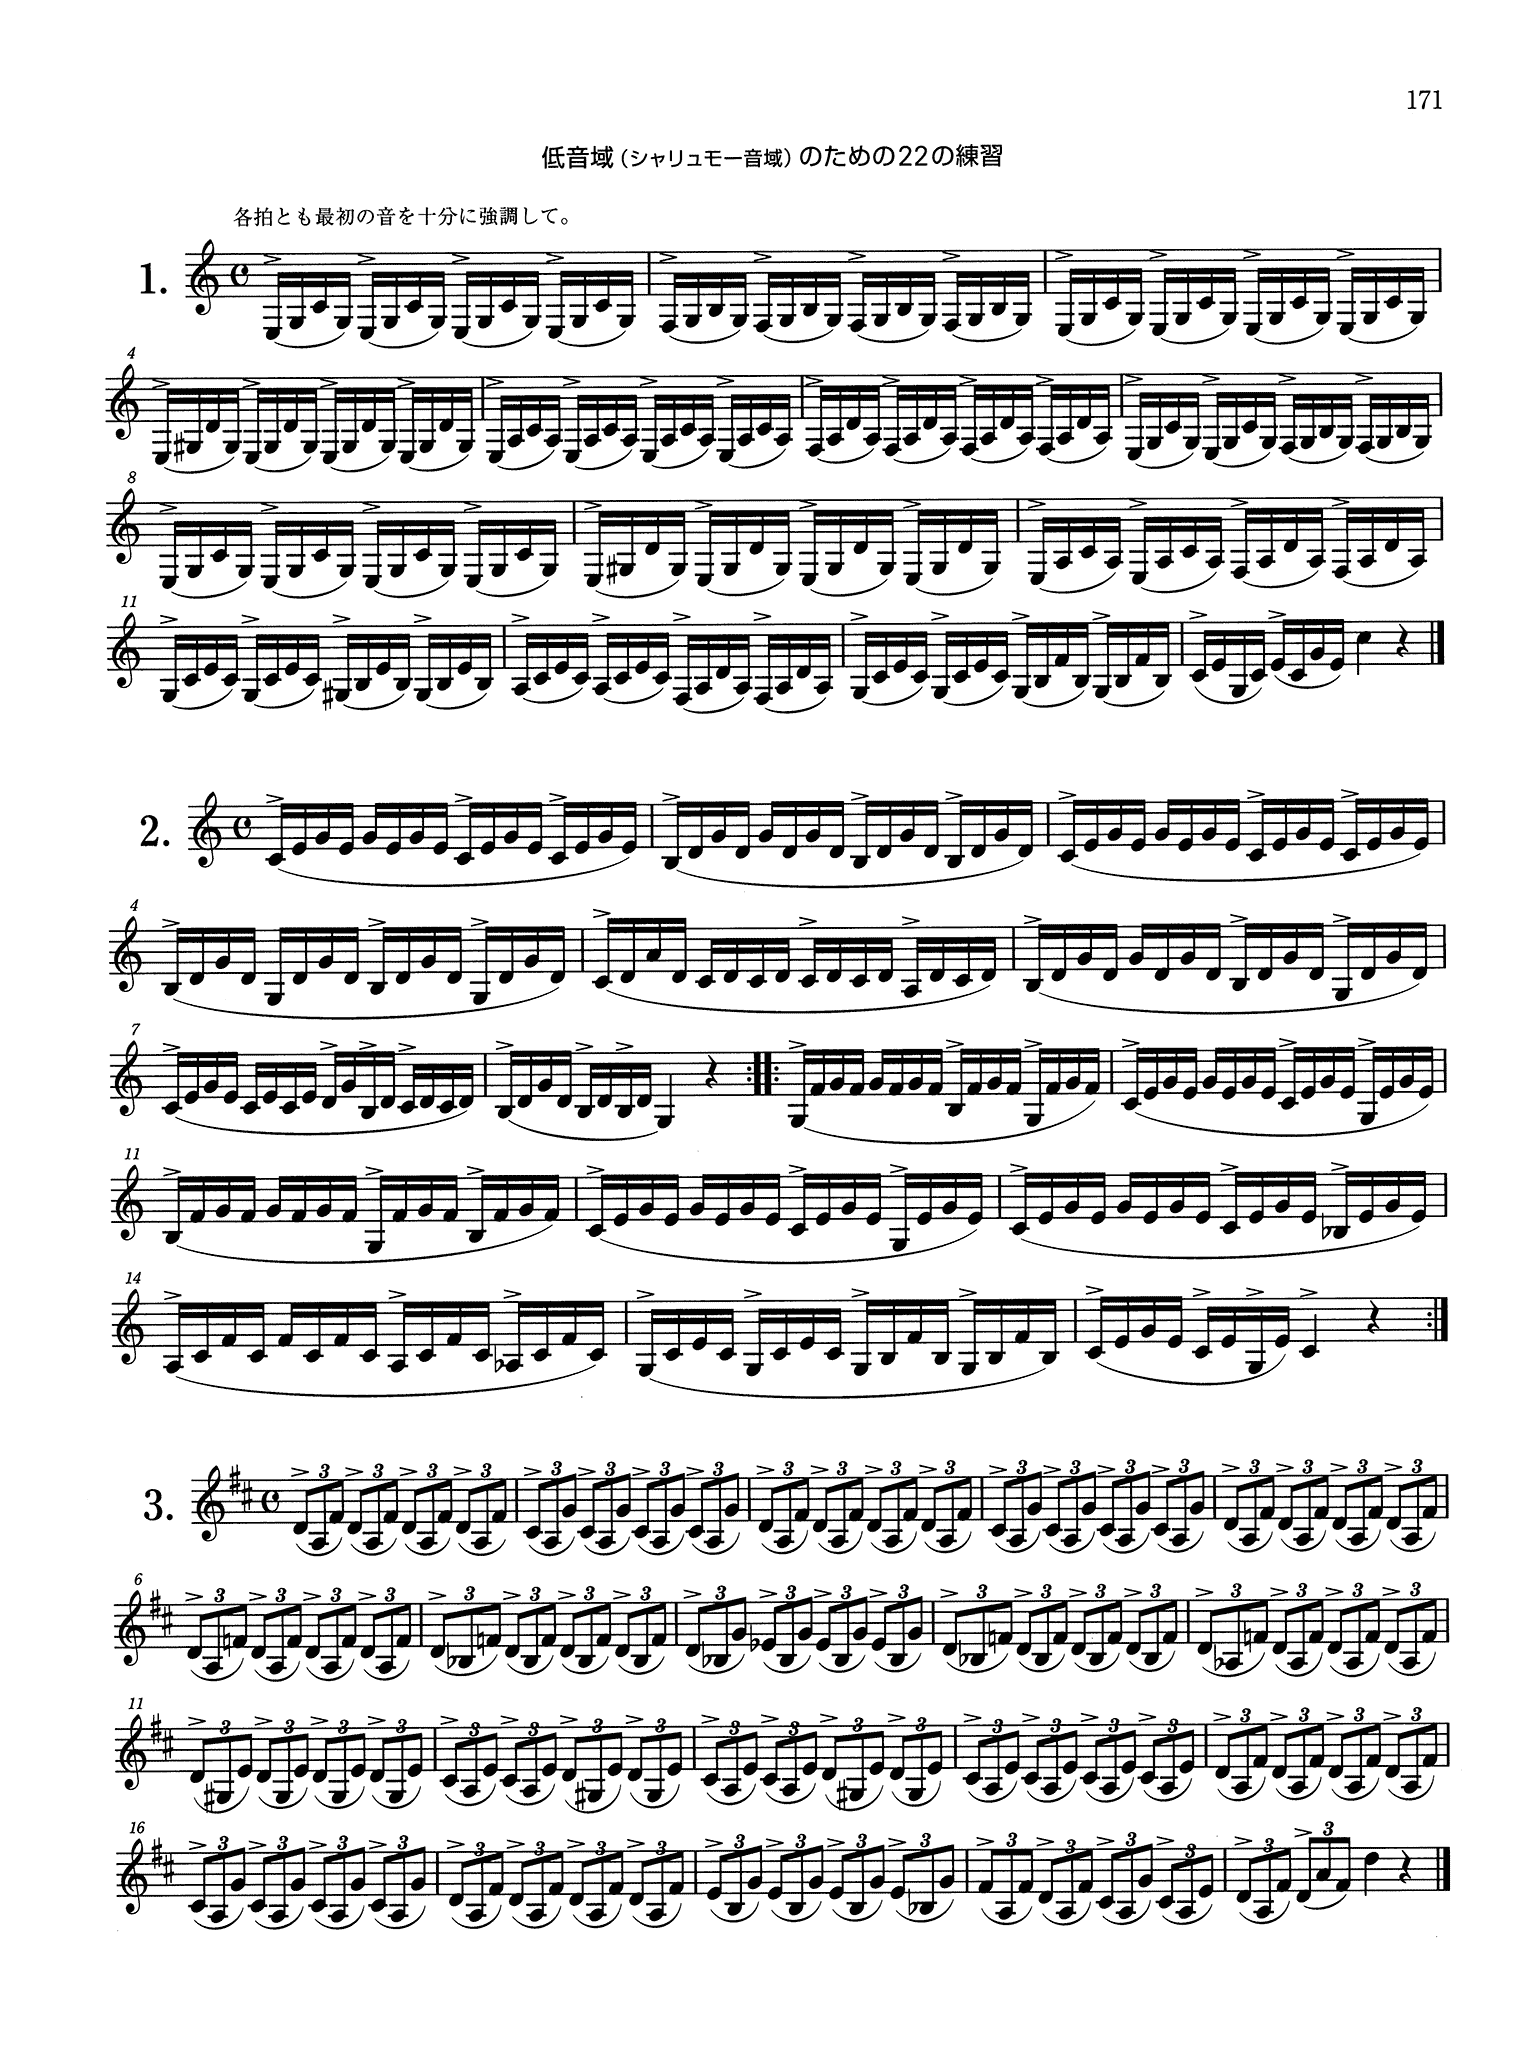 Klosé Complete Clarinet Method Page 171